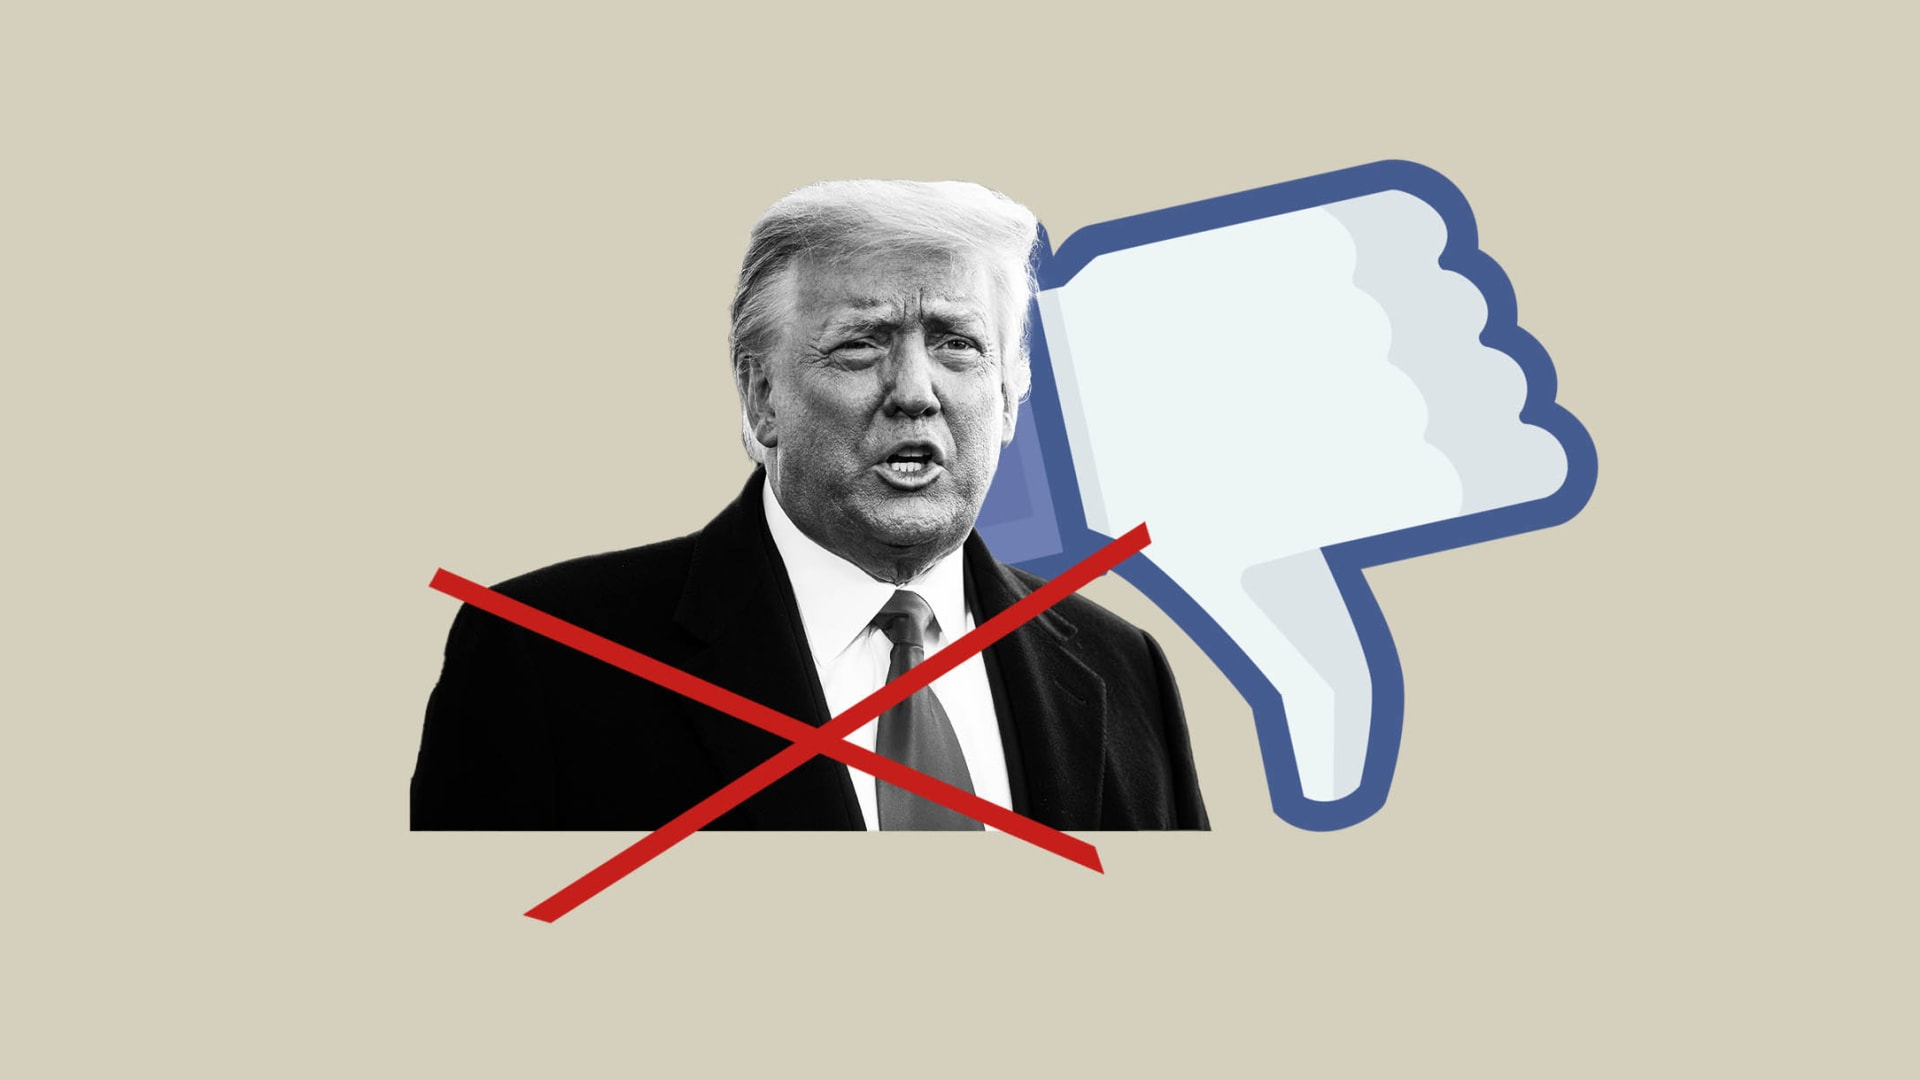 With Just 6 Words, the Oversight Board Issued a Devastating Takedown of Facebook's Decision to Ban Trump